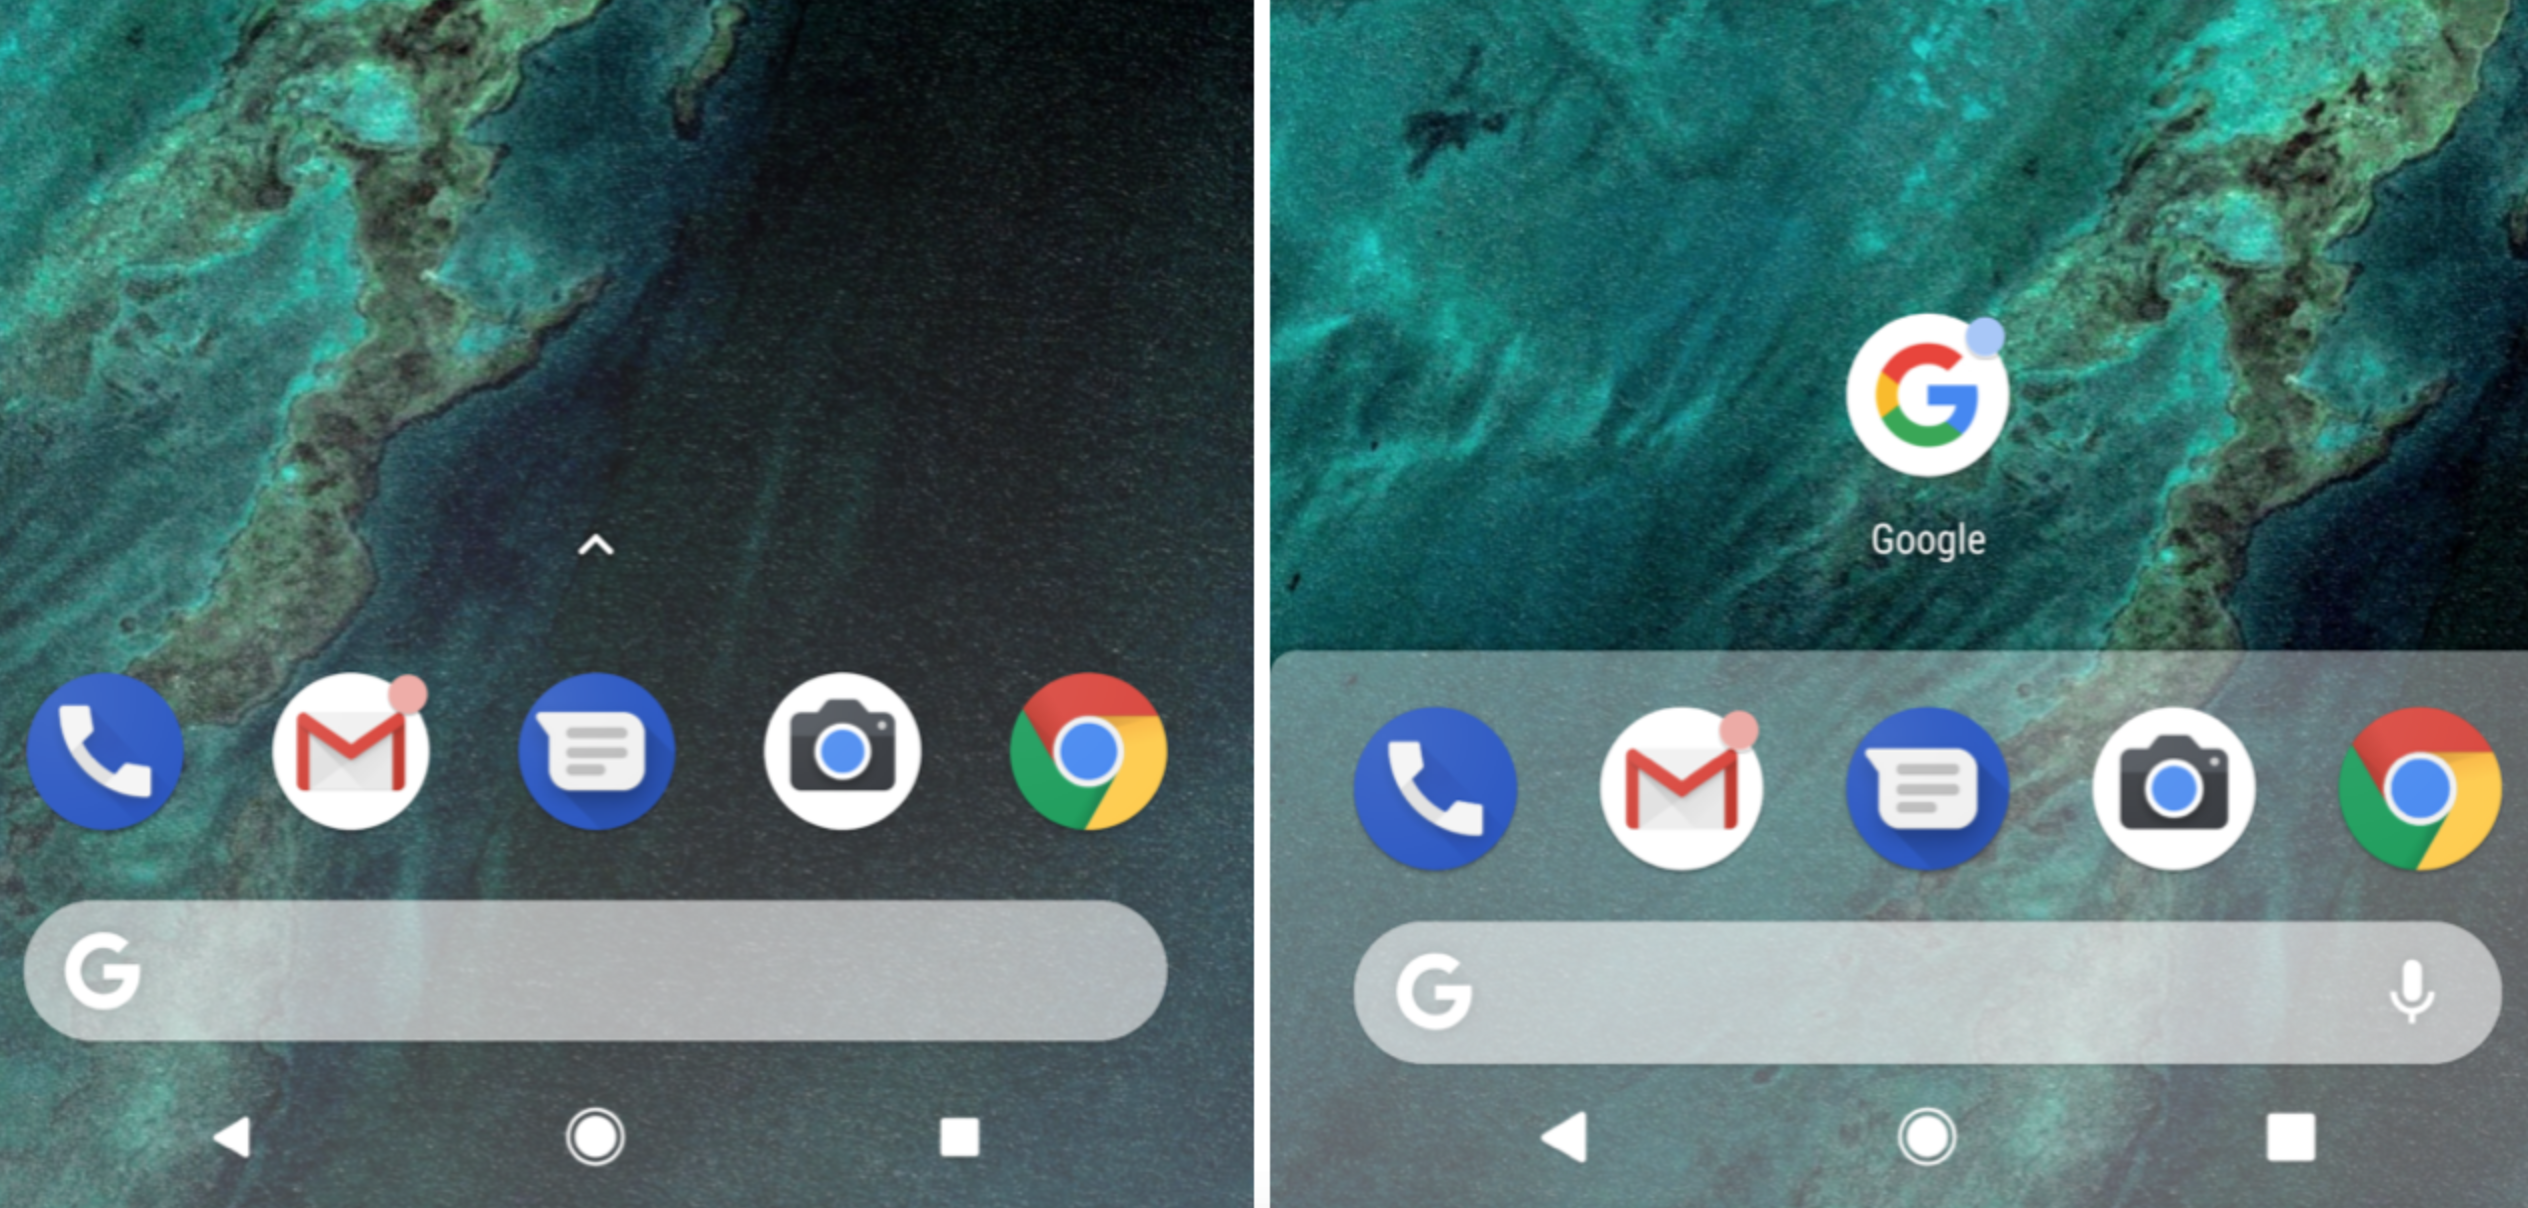 Download Android P Launcher APK - Brings Focus Back to the Dock!